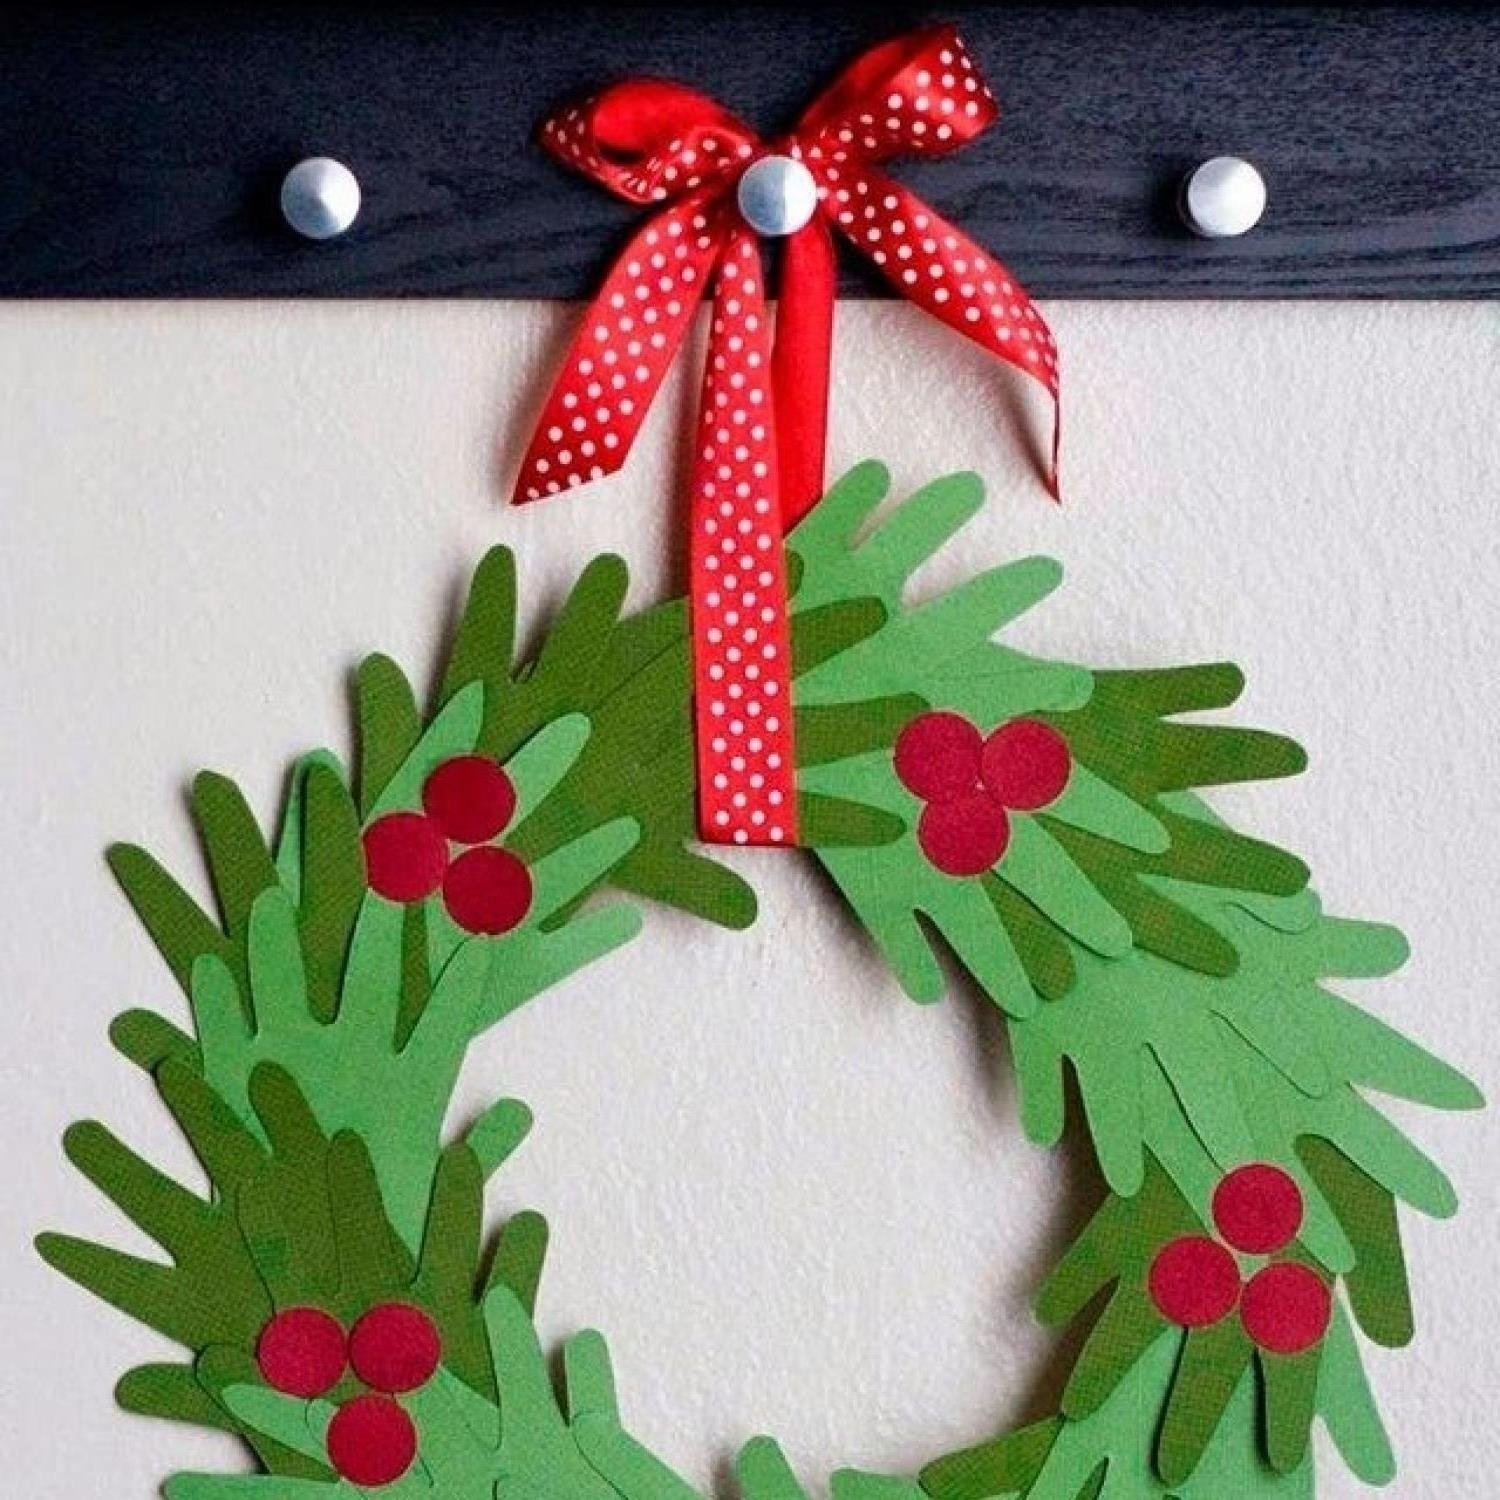 10 Amazing Holiday Craft Ideas For Kids christmas crafts for kids find craft ideas 5 2020